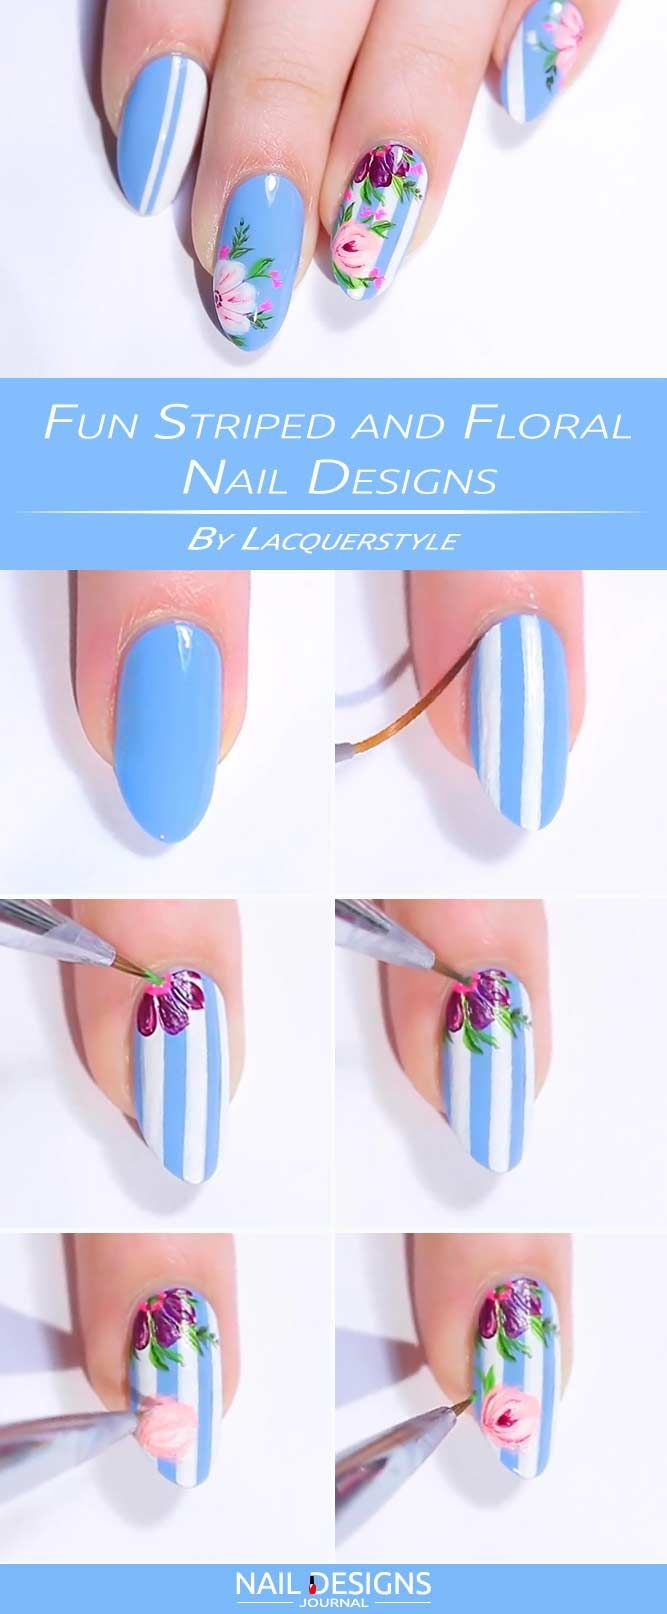 Fun Nail Designs That Are Easy To Do At Home In 2018 Nails